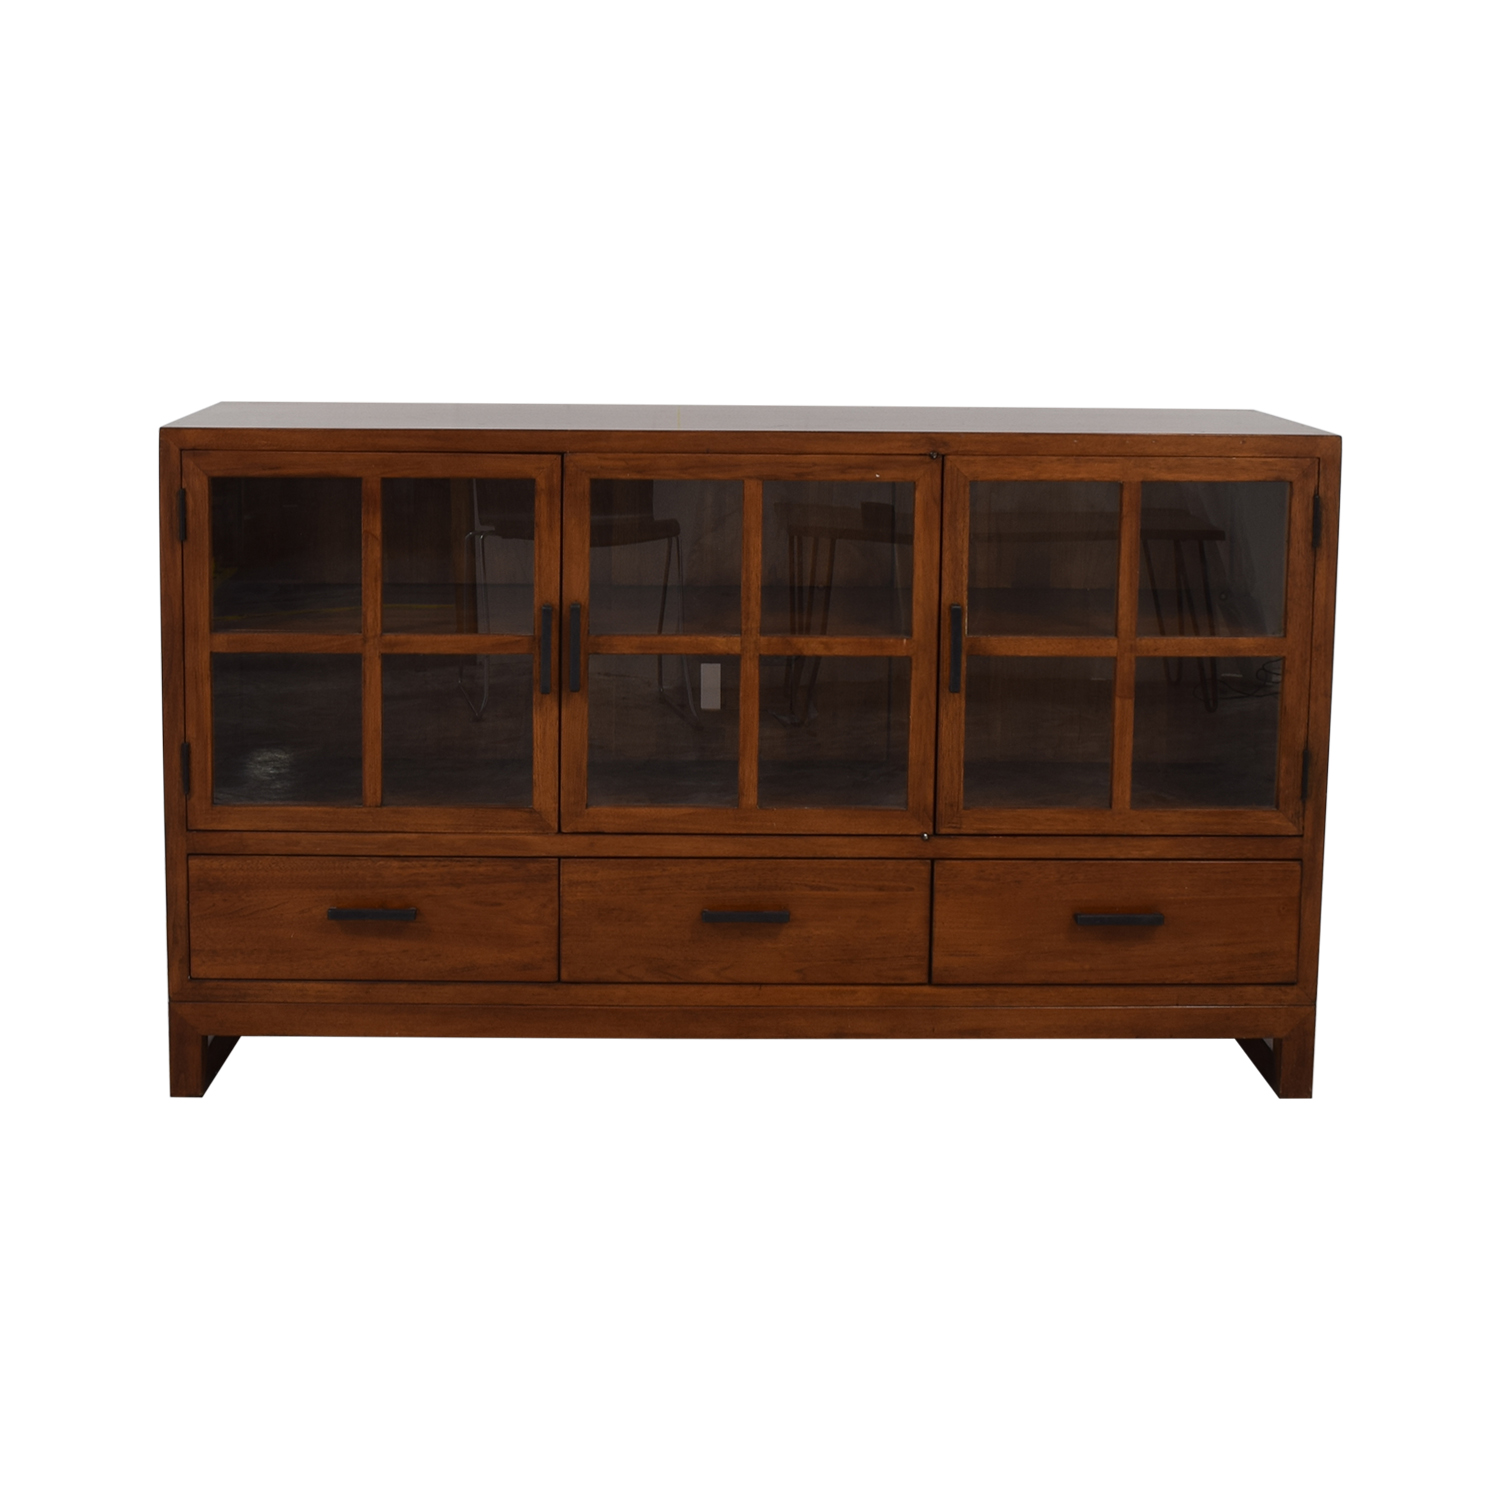 Crate & Barrel Sideboard with Glass Doors / Storage